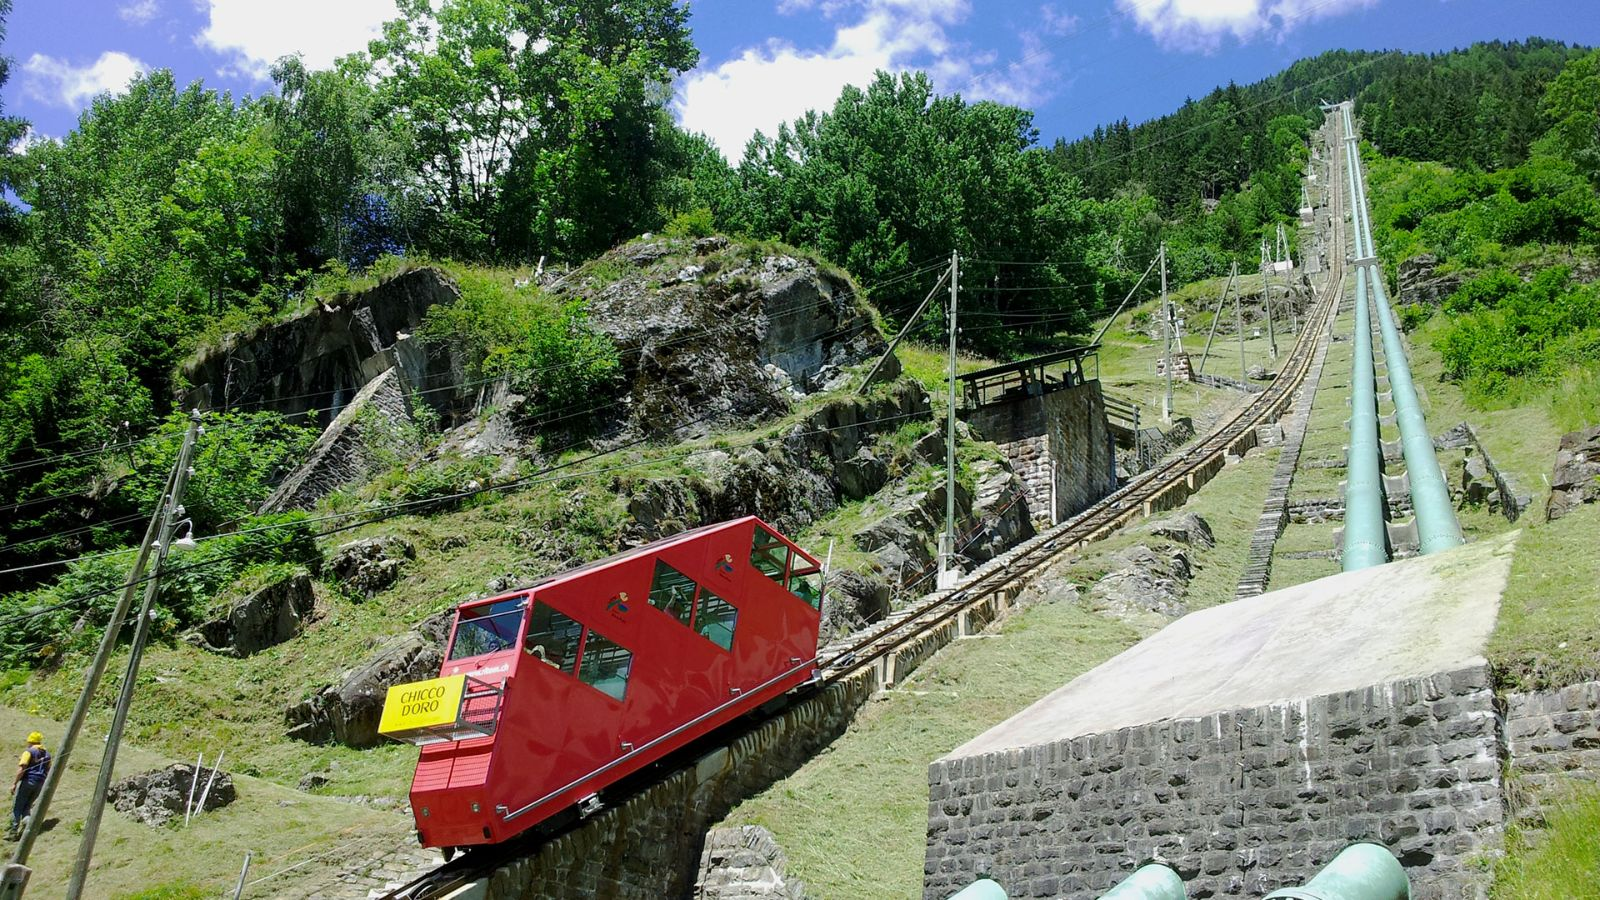 How steep the Ritom funicular is!